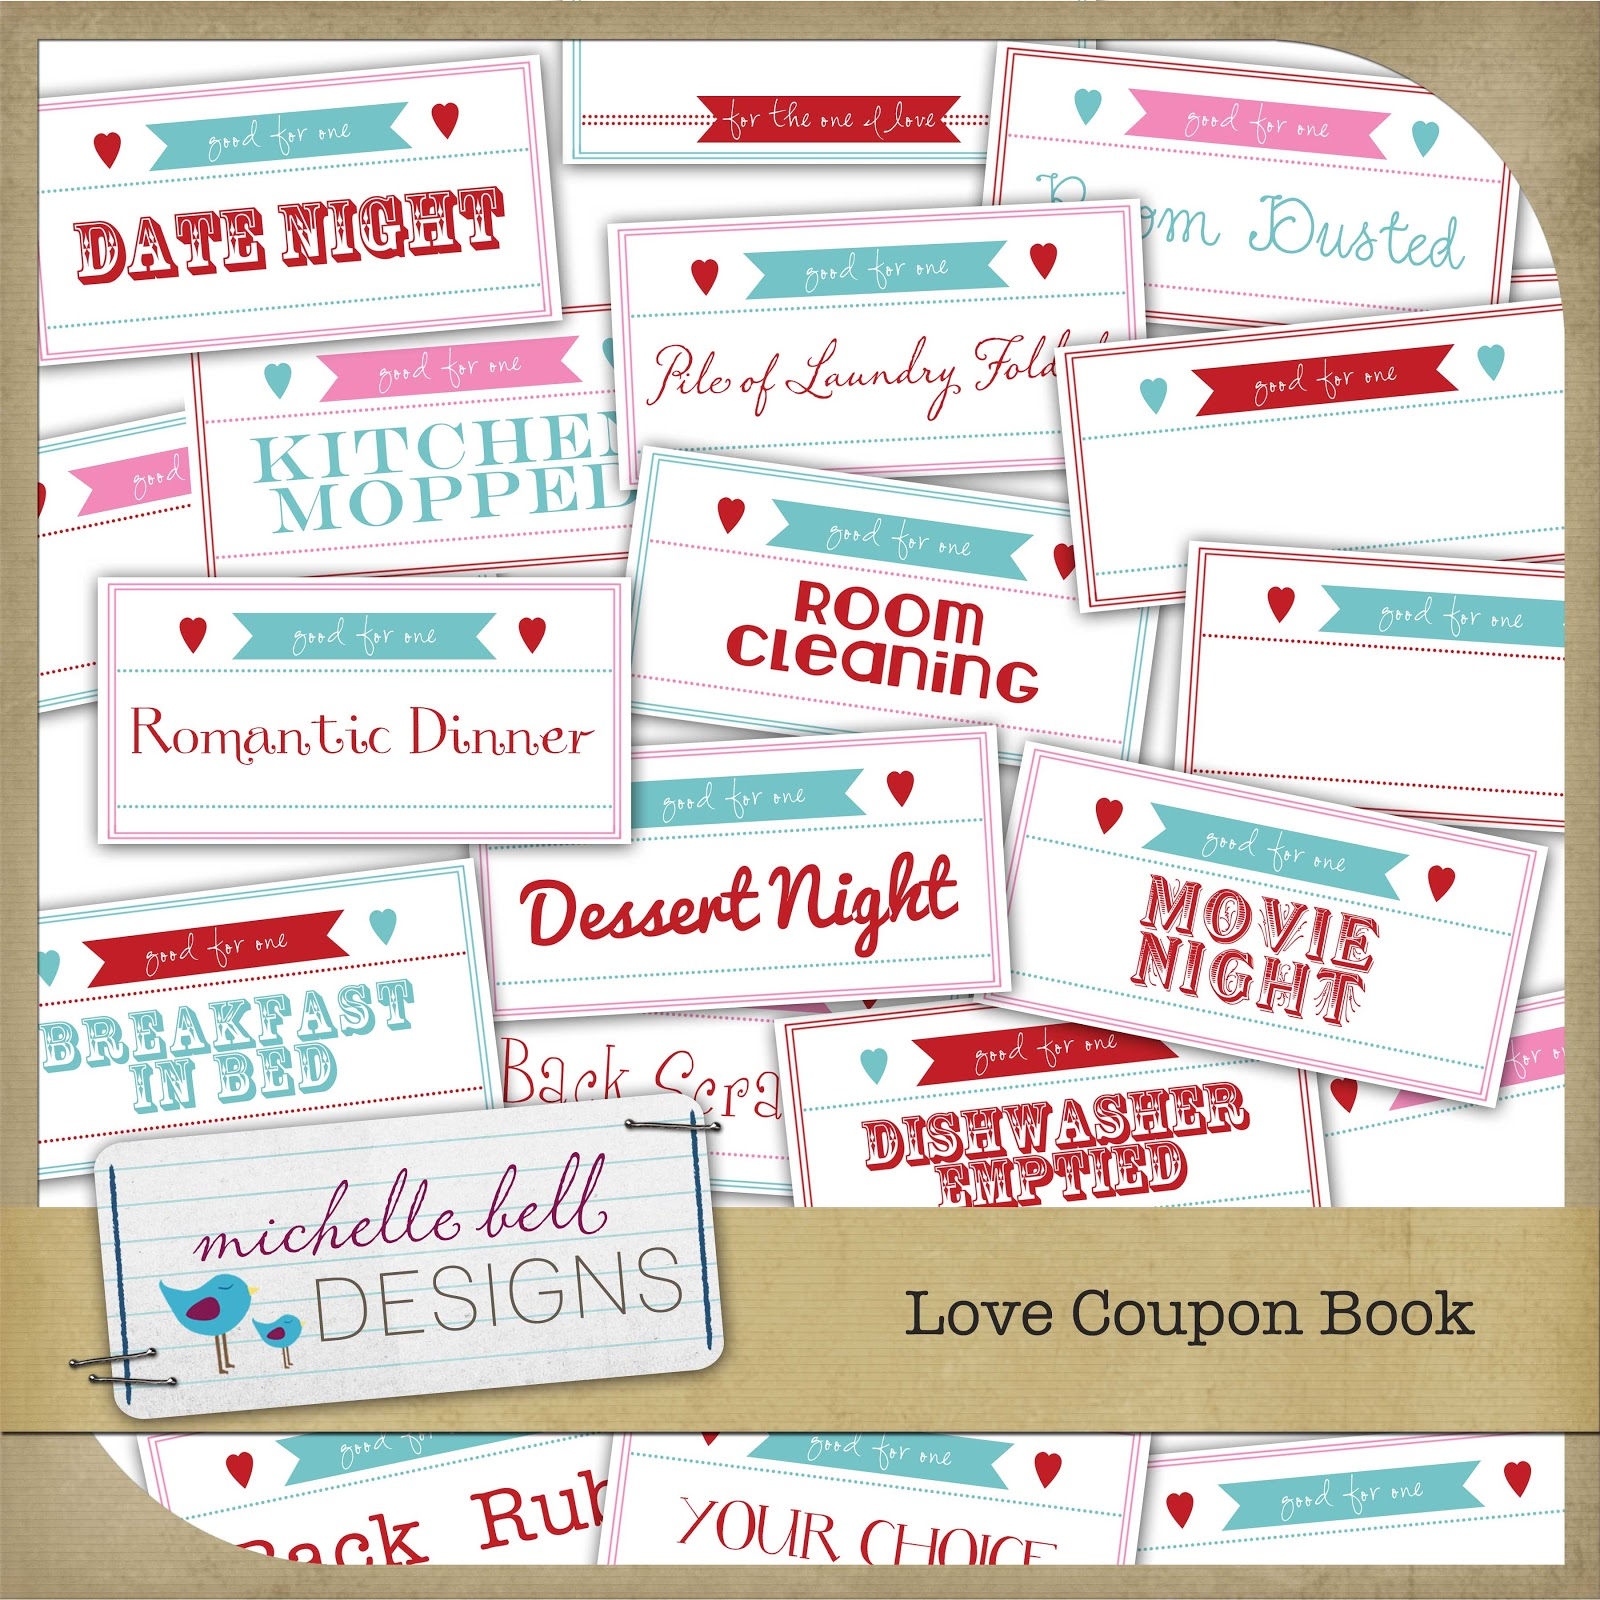 Make the Best of Your Nest: Valentine Coupon Book {FREE Printable!}